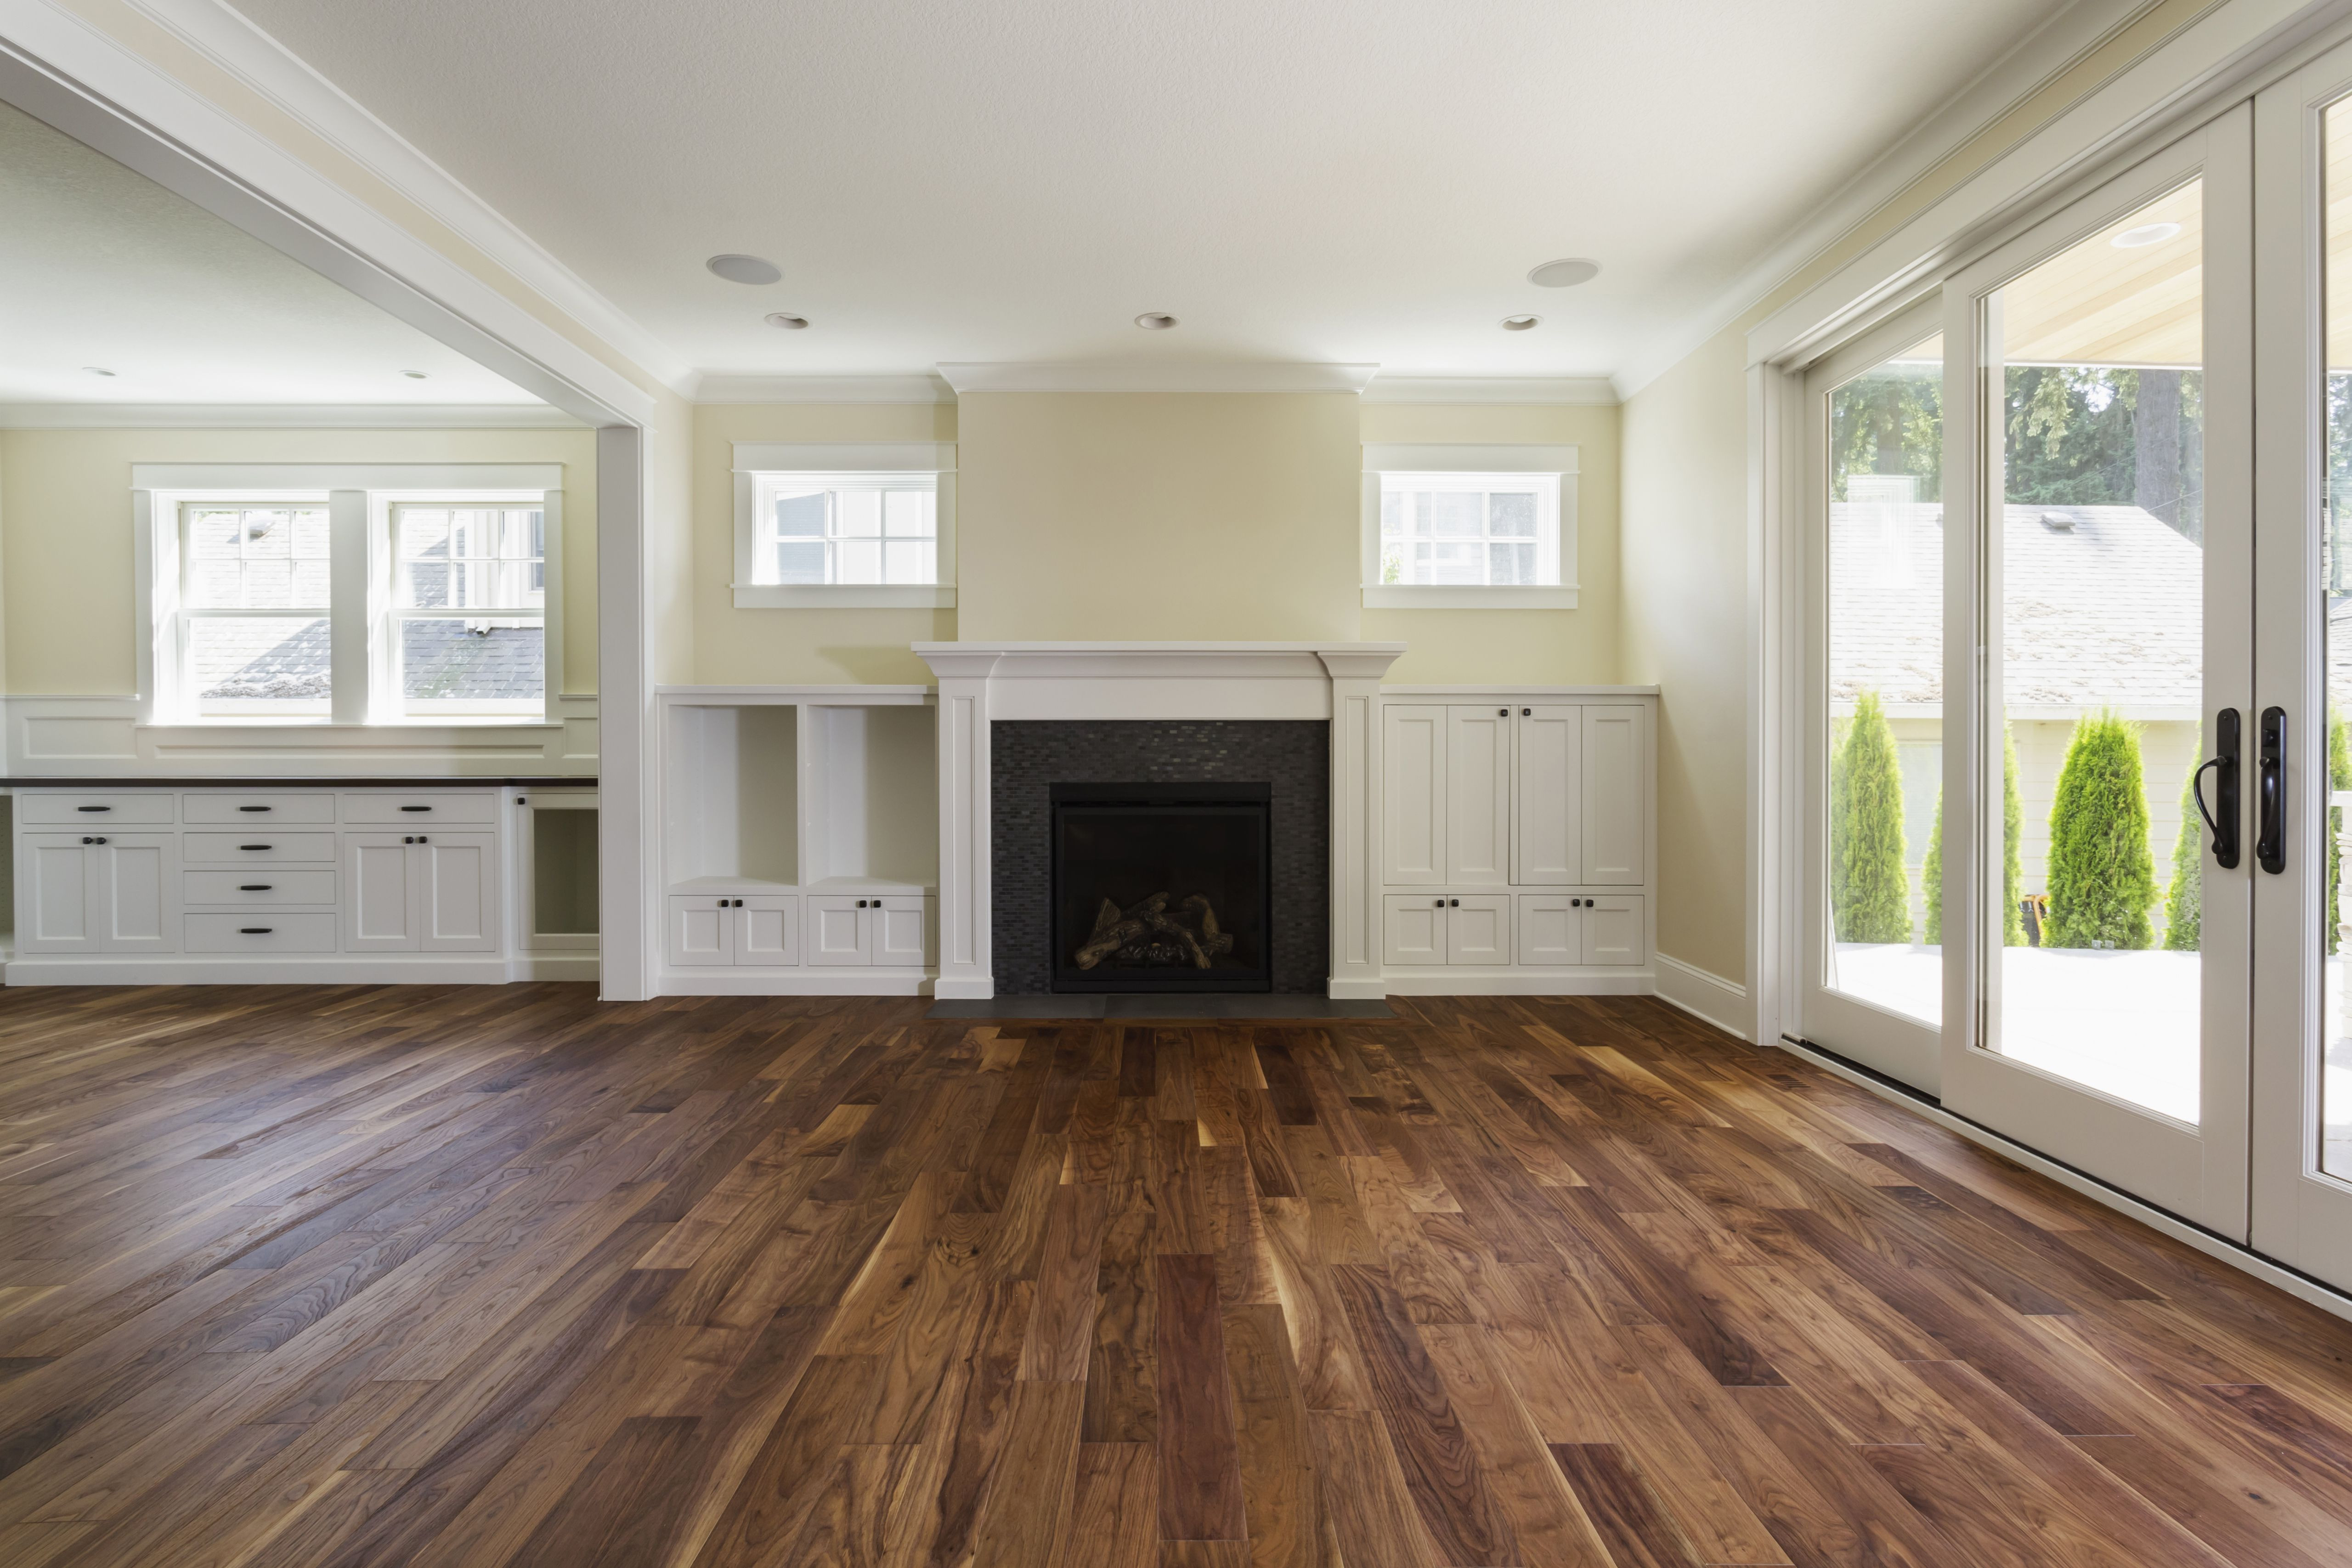 hardwood floor stain not drying of the pros and cons of prefinished hardwood flooring inside fireplace and built in shelves in living room 482143011 57bef8e33df78cc16e035397